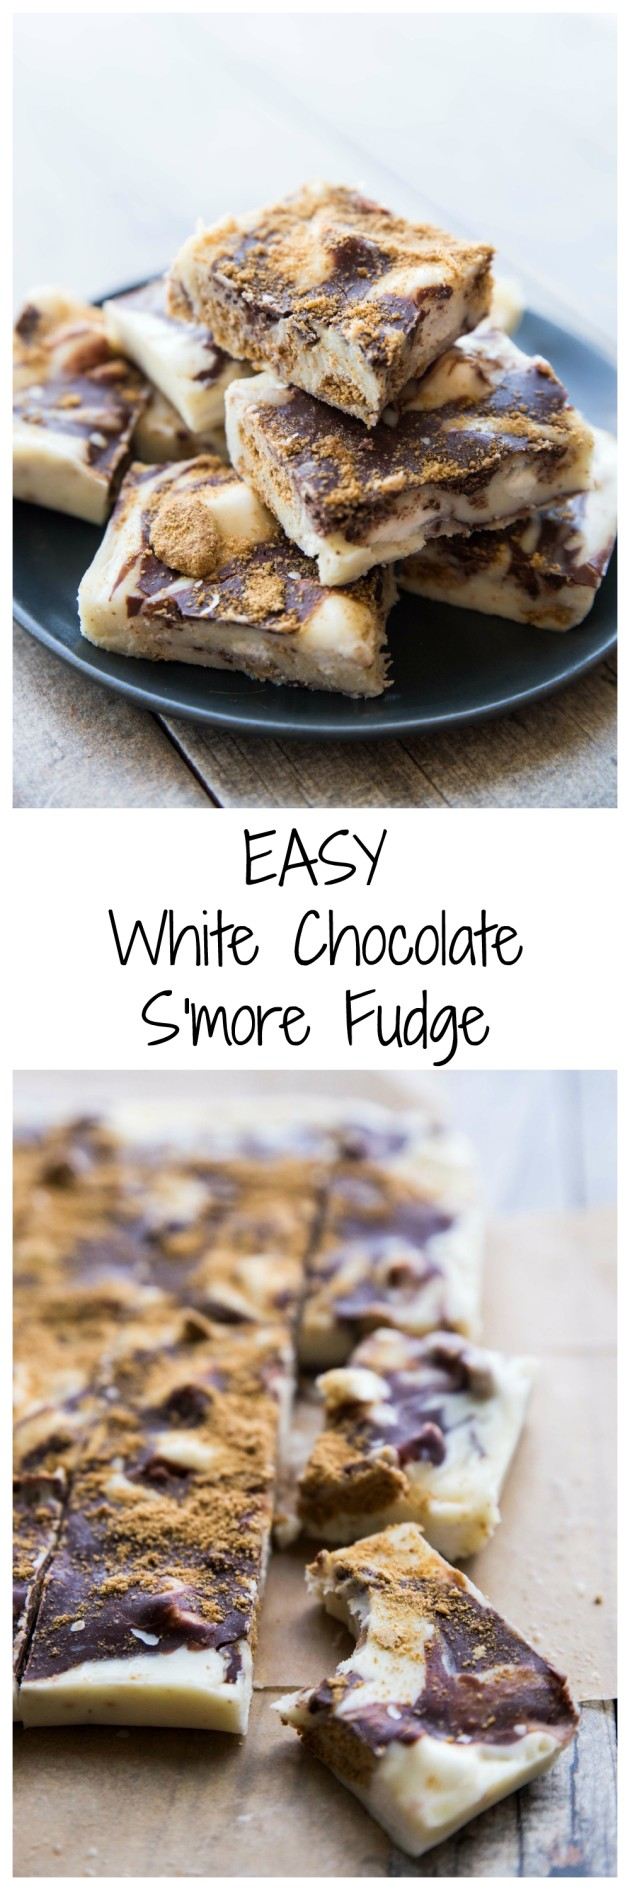 Easy White Chocolate S'more Fudge - Creamy and rich white chocolate fudge with all the s'more flavor you want, and ridiculously simple!